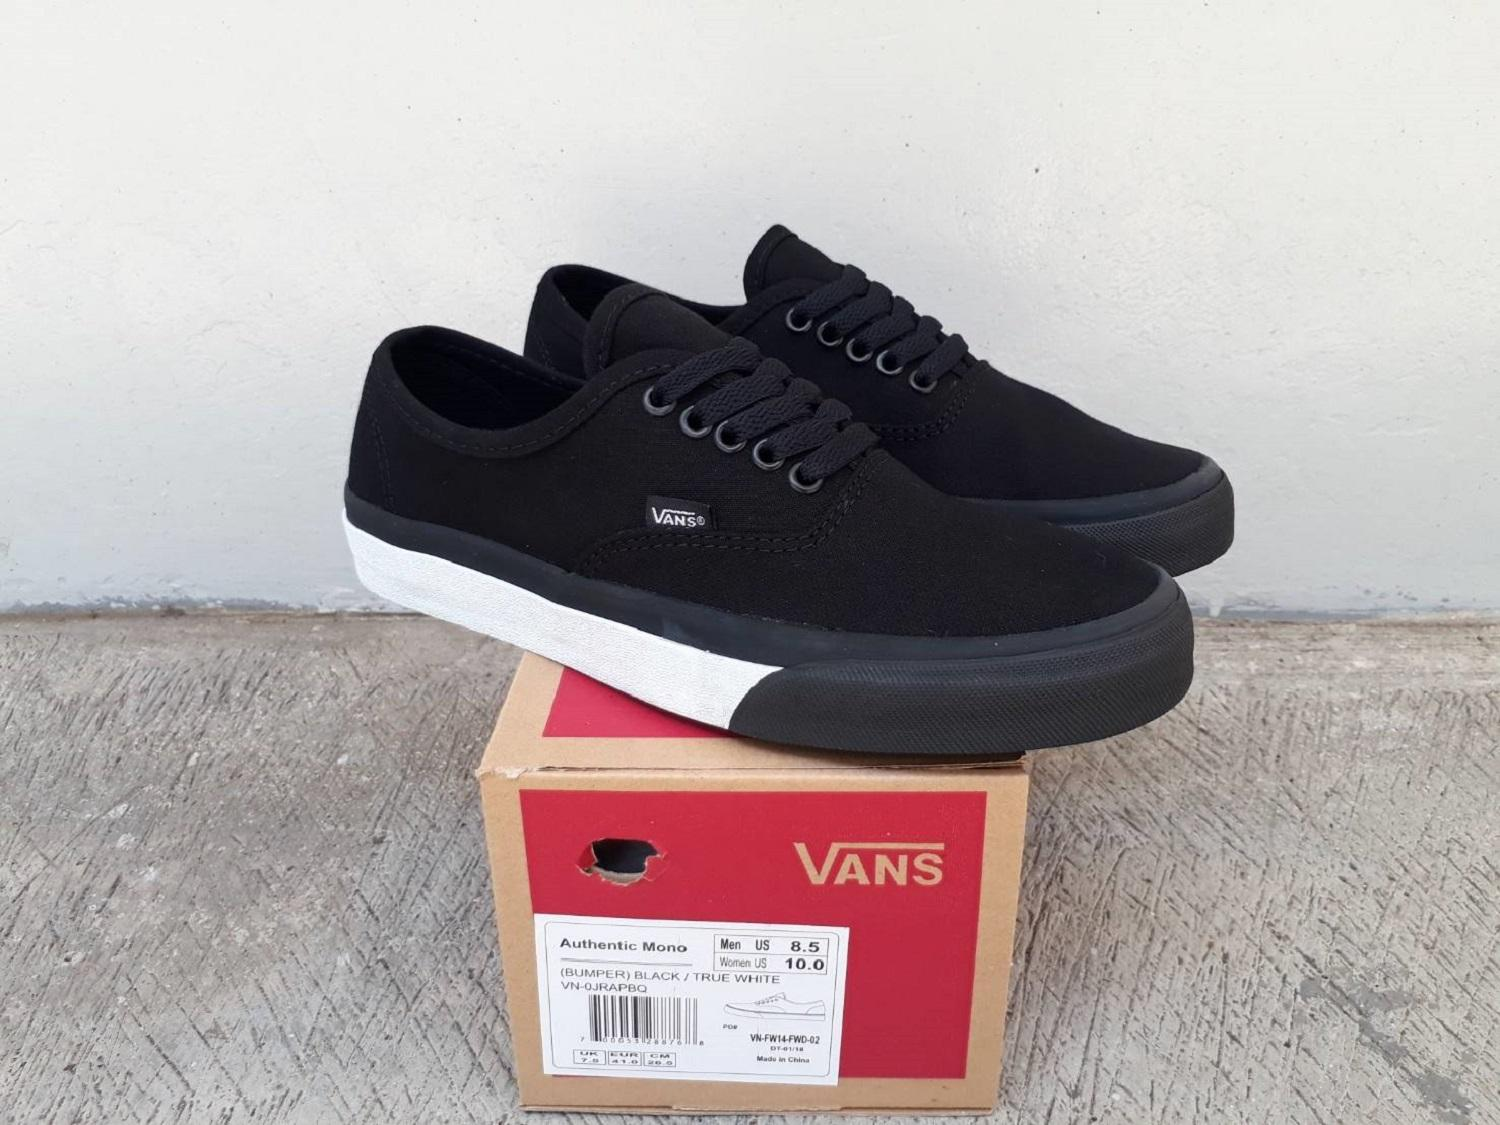 vns authentic mono bumper black wafle dt